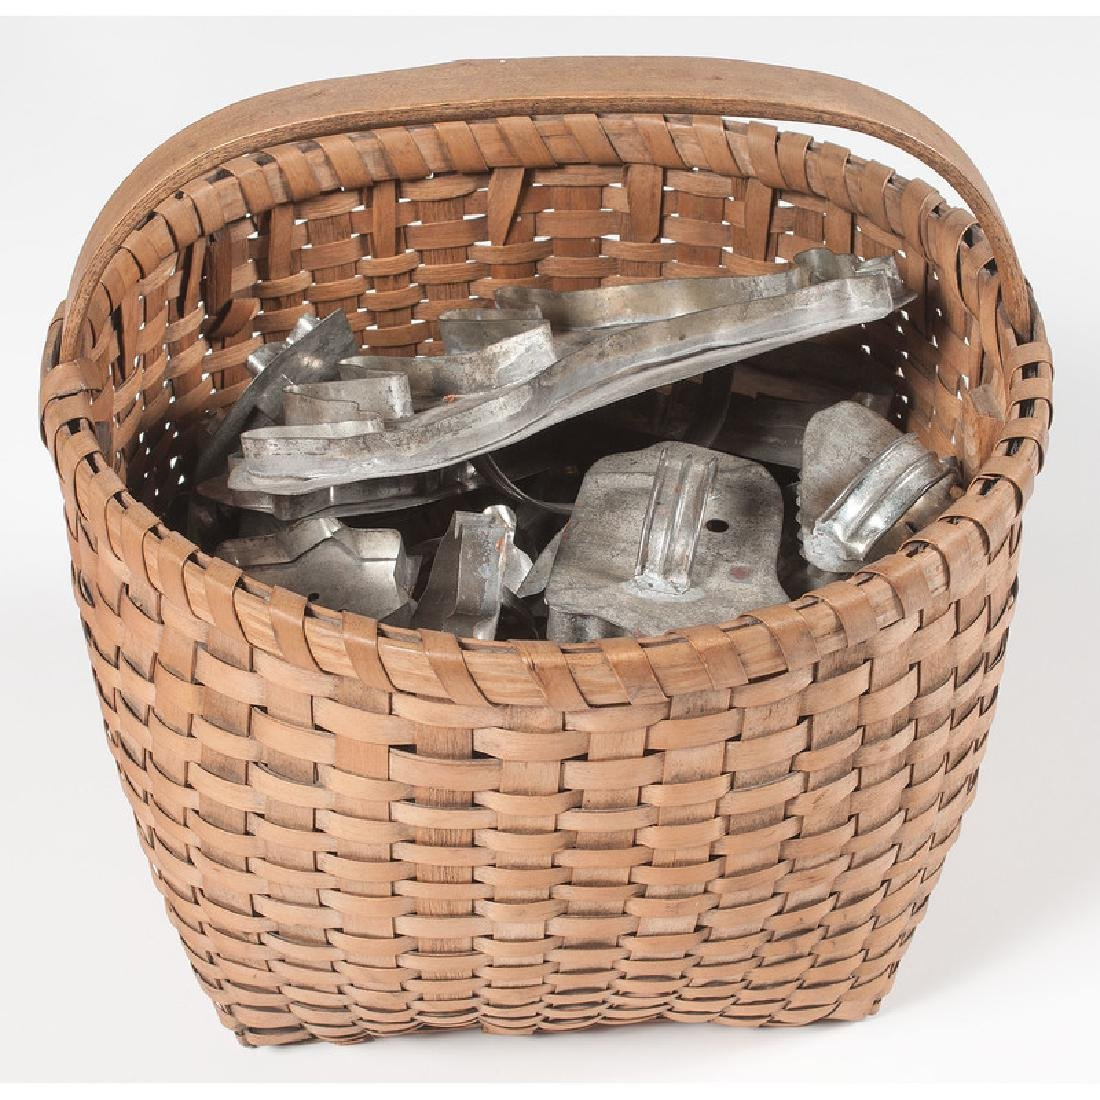 Cookie Cutters and Basket - 2